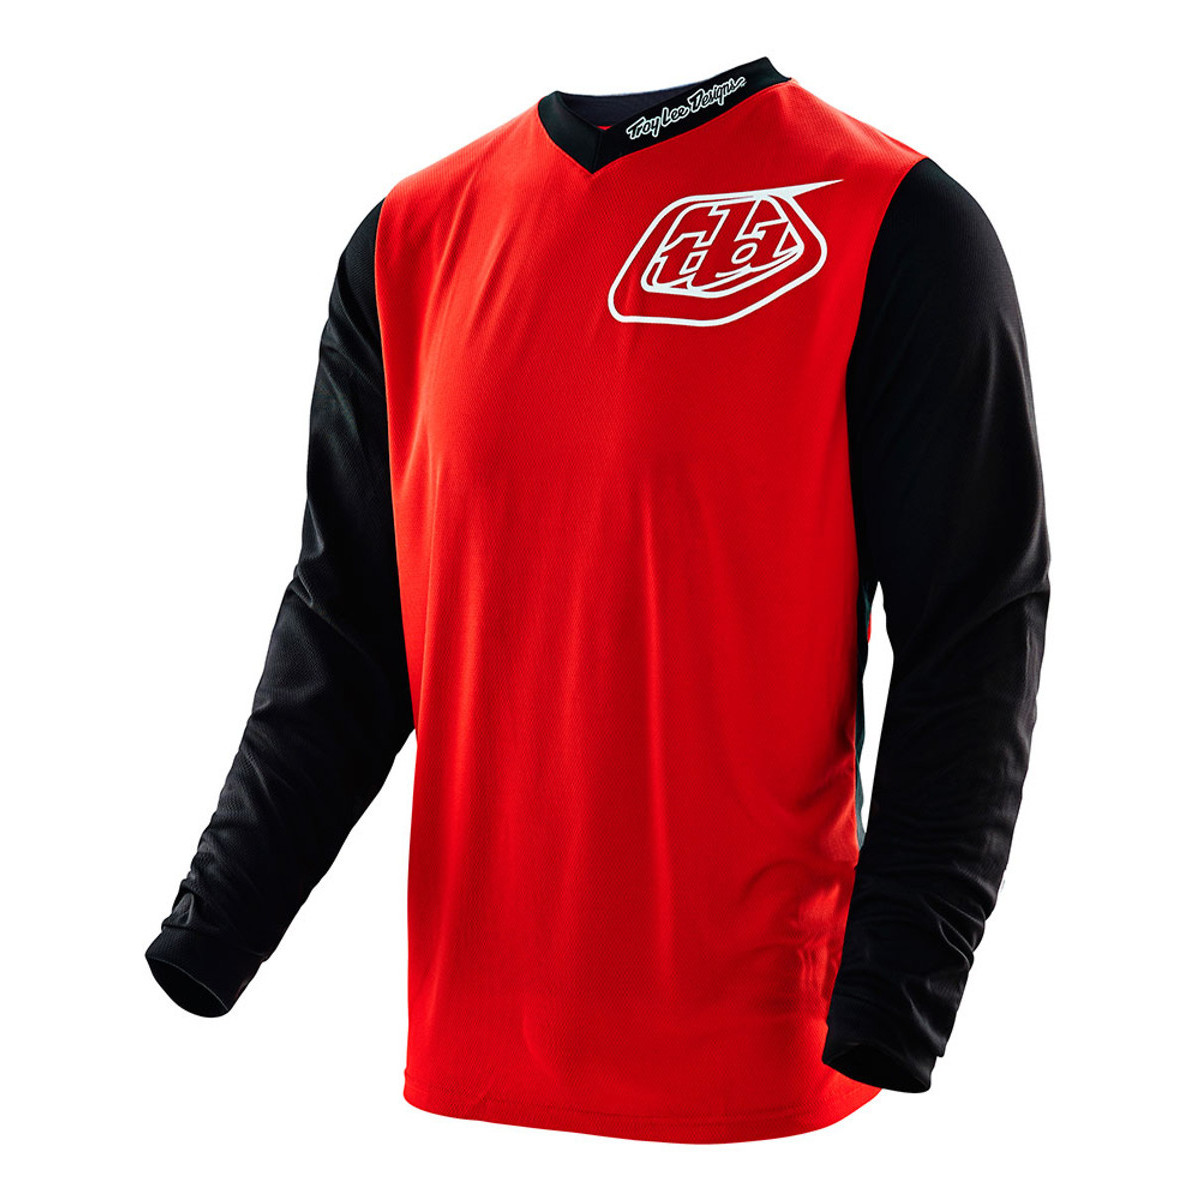 Troy Lee Designs GP Jersey  TLD GP Jersey - Hot Rod Red